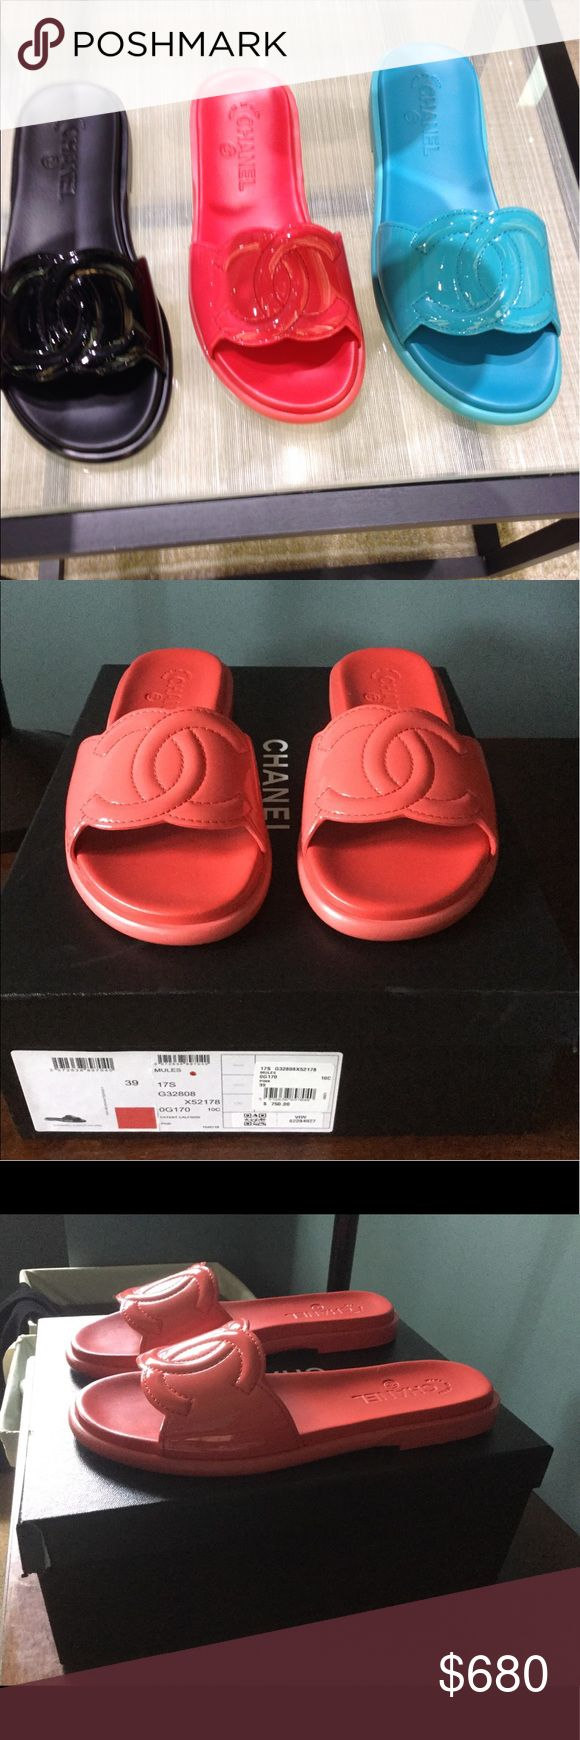 Authentic NEW Chanel Maxi Slides Coral Pink Patent Brand new, never worn, authentic Chanel Coral Pink Patent Leather Maxi CC Slides. Comes with box, shoe bags, ribbon, camellia flower, and copy of the receipt as shown in the last photo. CHANEL Shoes